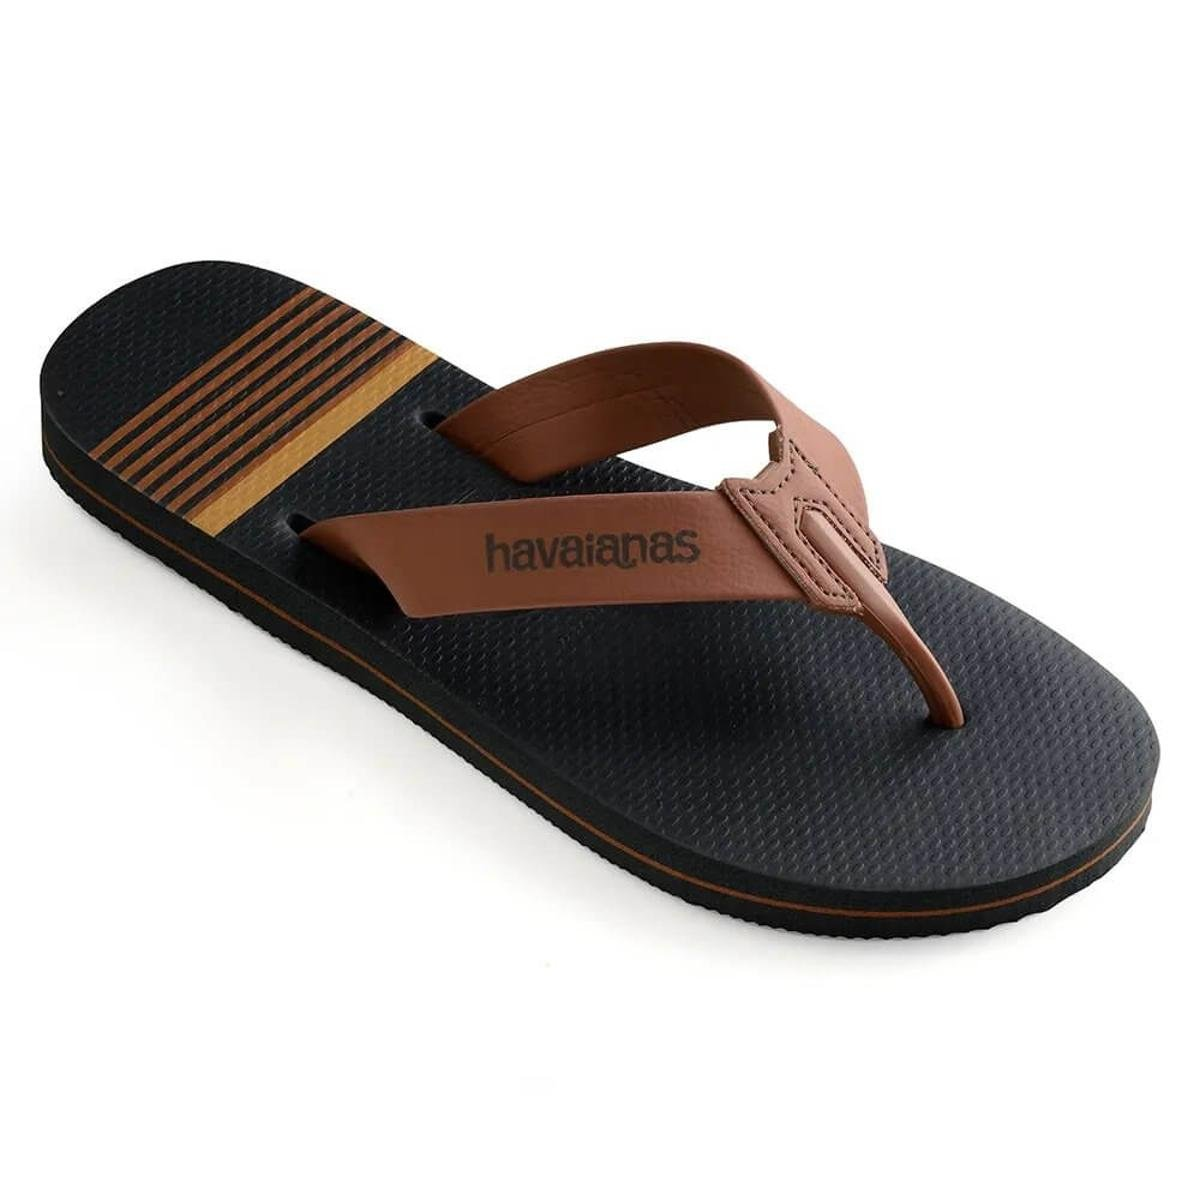 Chinelo Havaianas Urban Craft Masculino - Marrom e Grafite